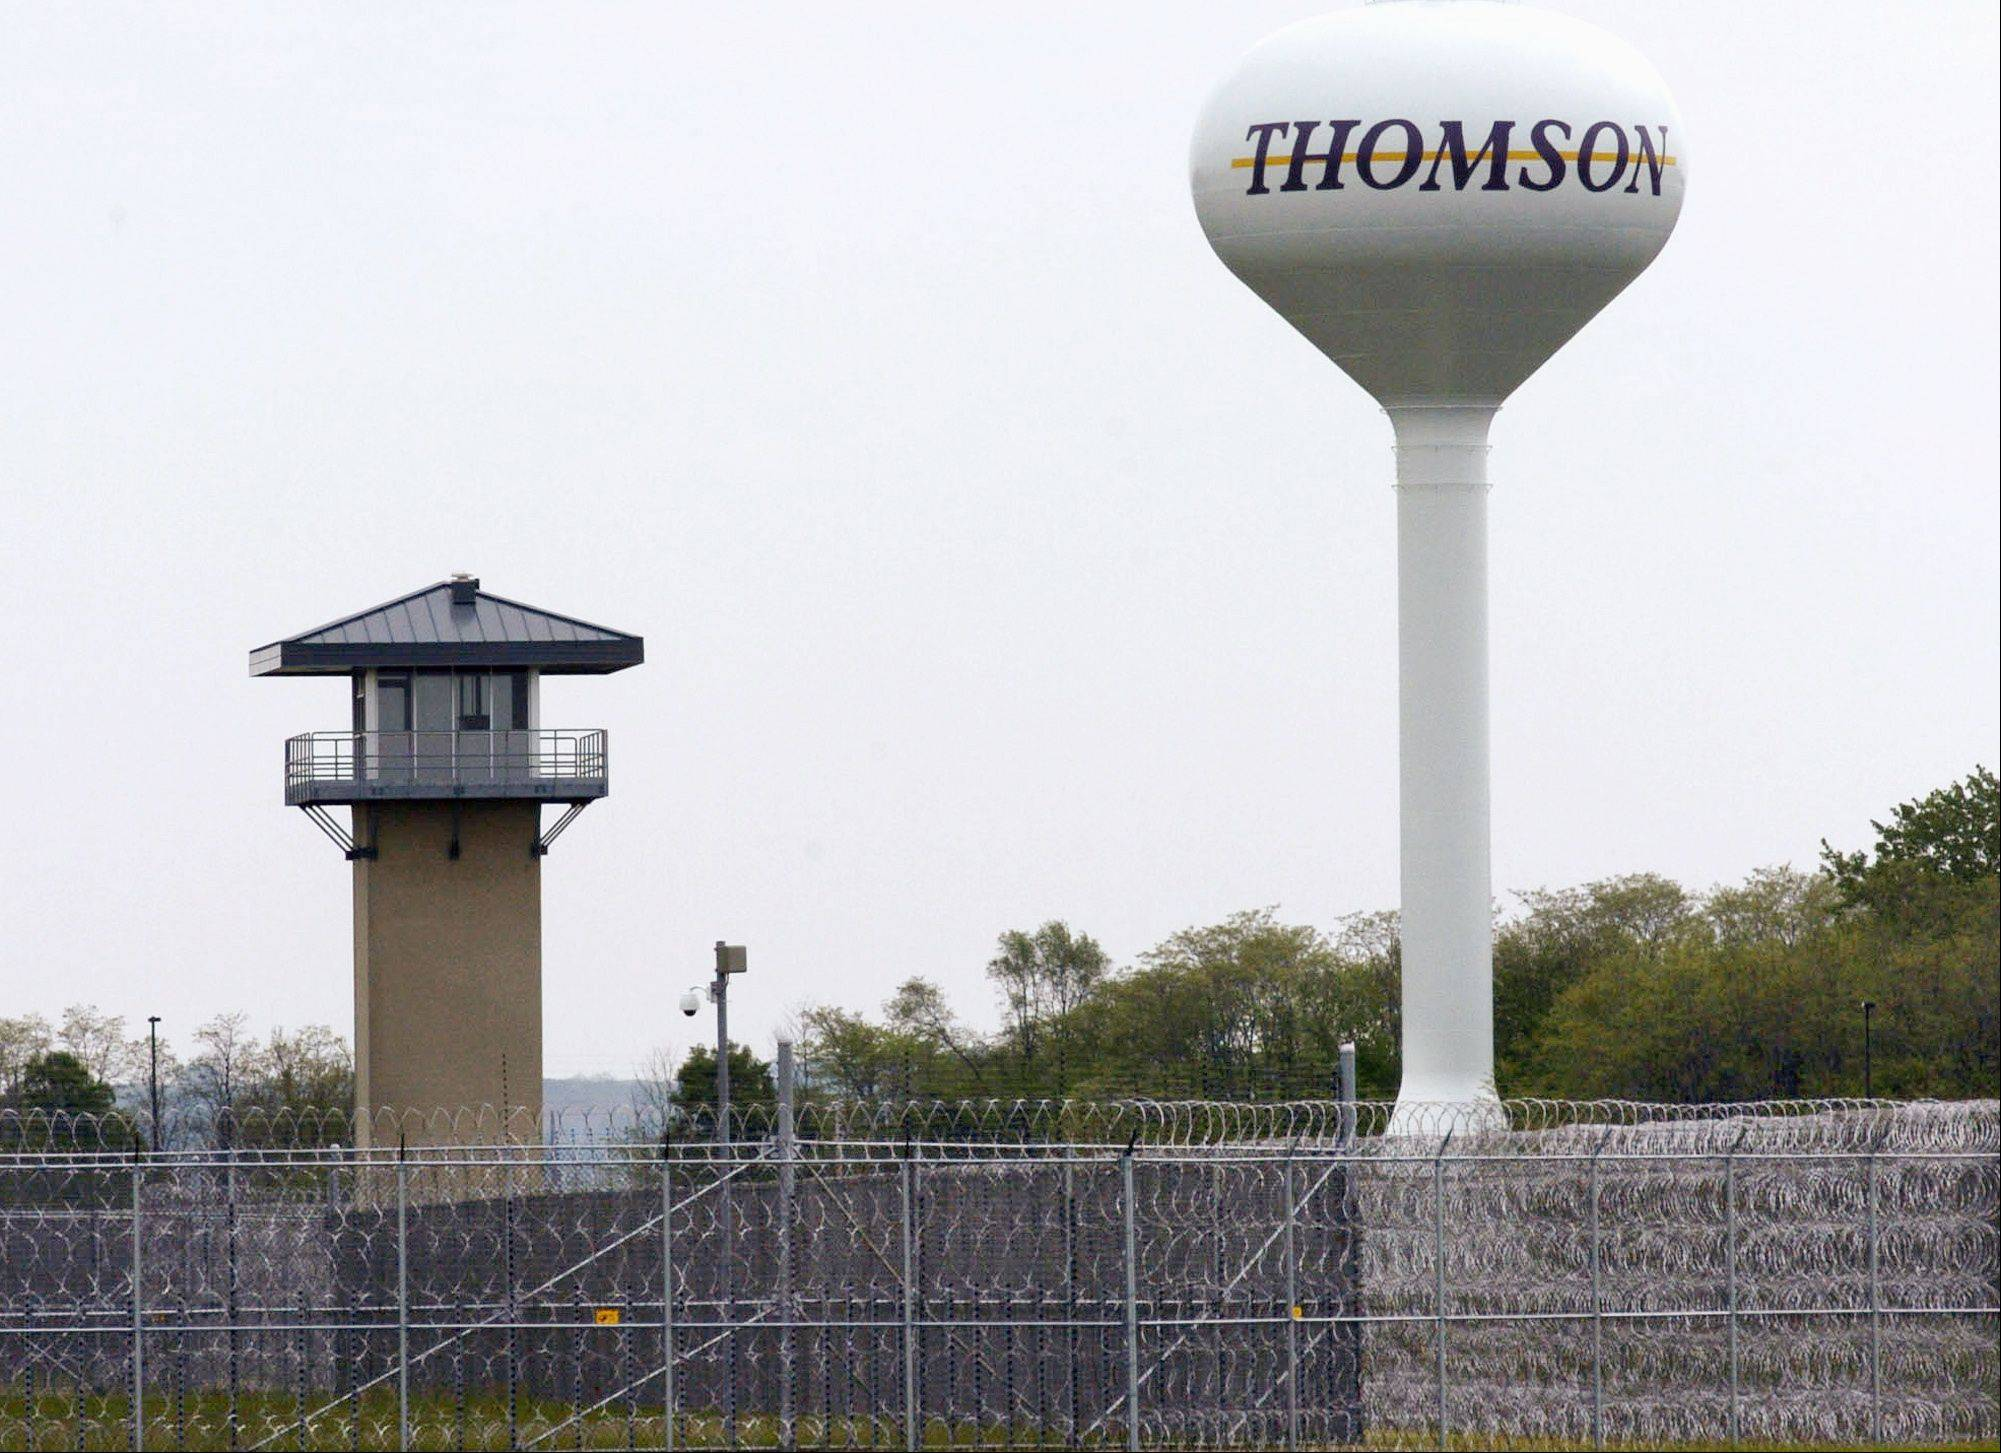 A guard tower overlooking a fence and coils of wire surrounding the Thomson Correctional Center in Thomson, Ill.